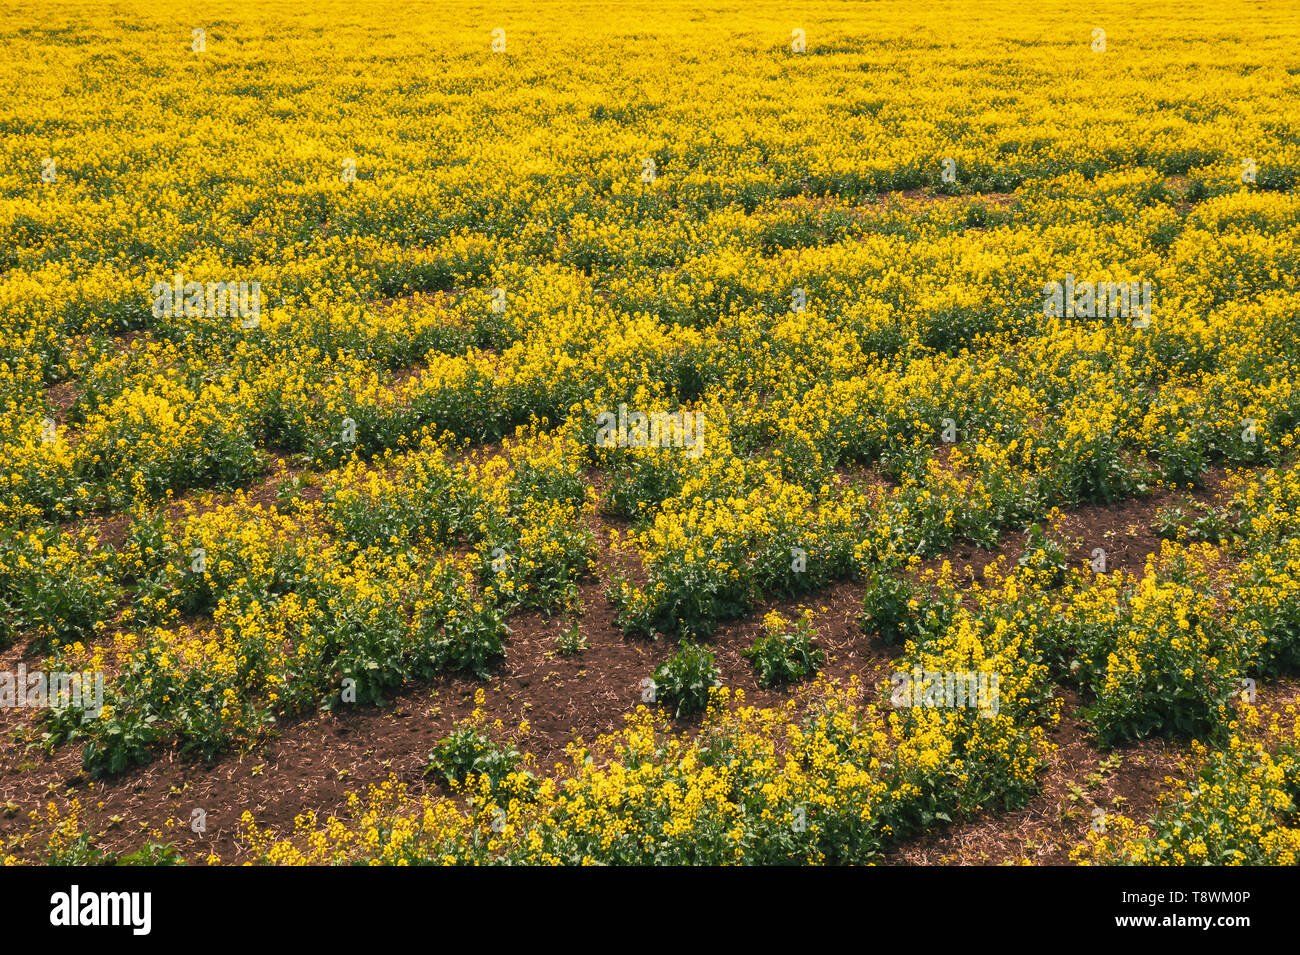 Aerial view of canola rapeseed field in poor condition due to drought season and arid climate - Stock Image